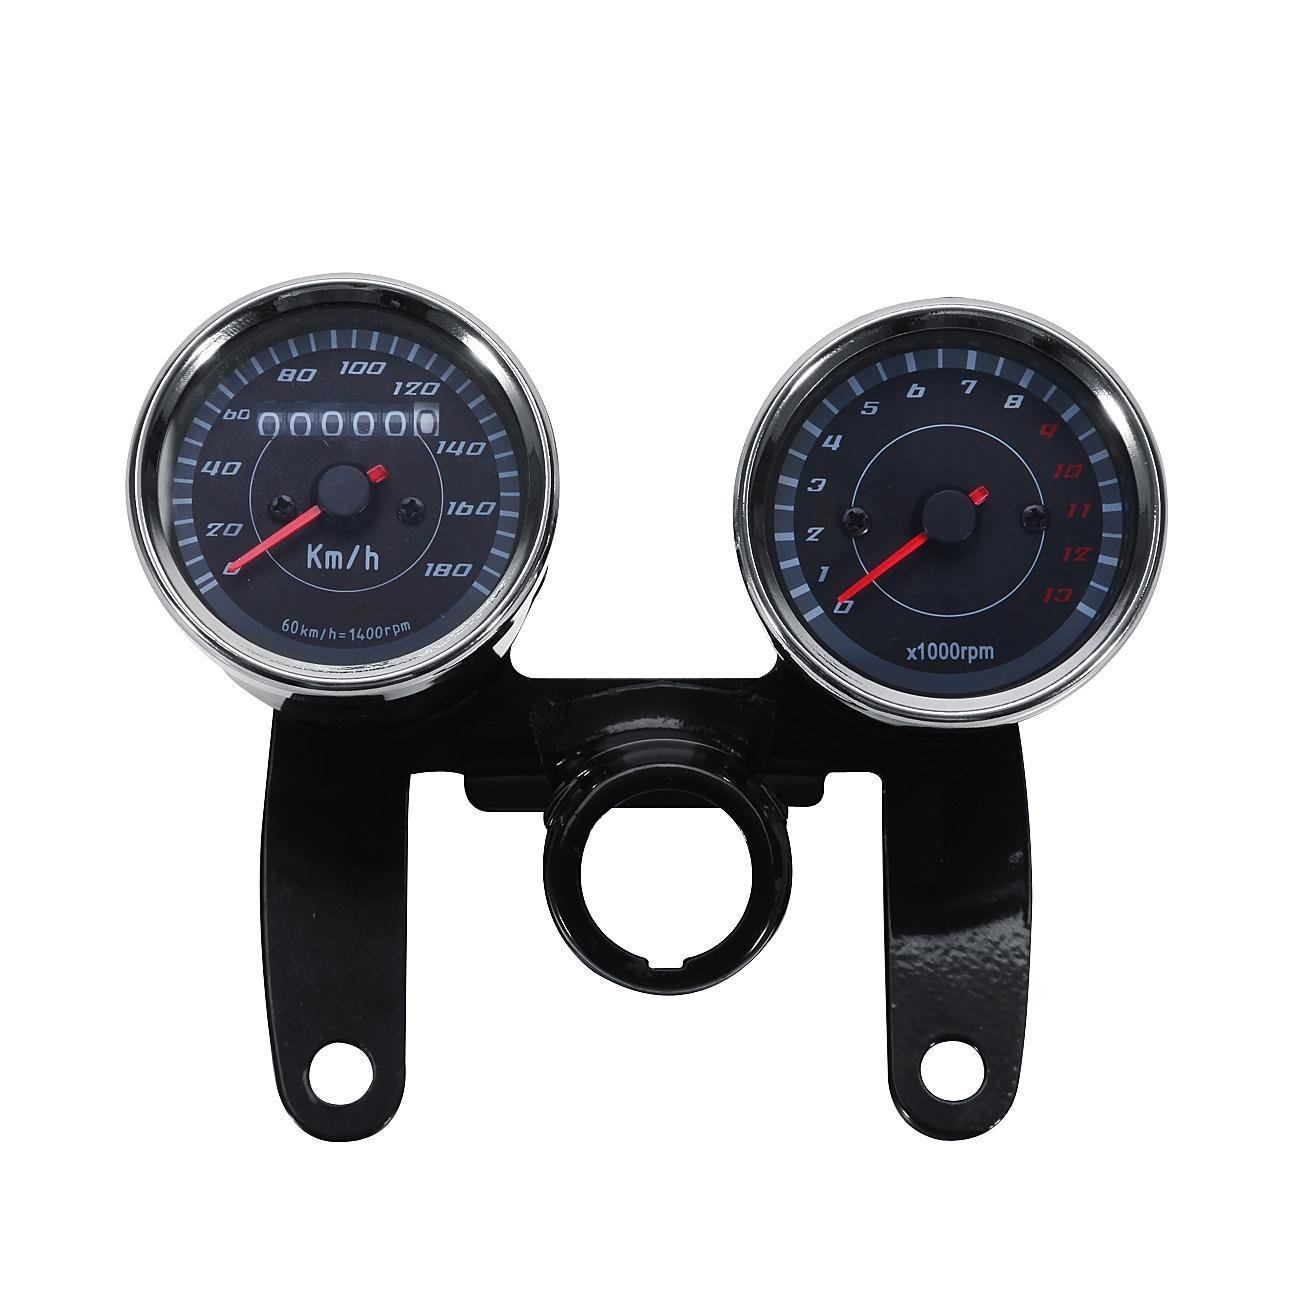 INNOGLOW Motorcycle Backlit Speedometer Tachometer Kit with Bracket,High Capacity Scale,Full-Sweep red Index,0-13000RPM,0-180km/h